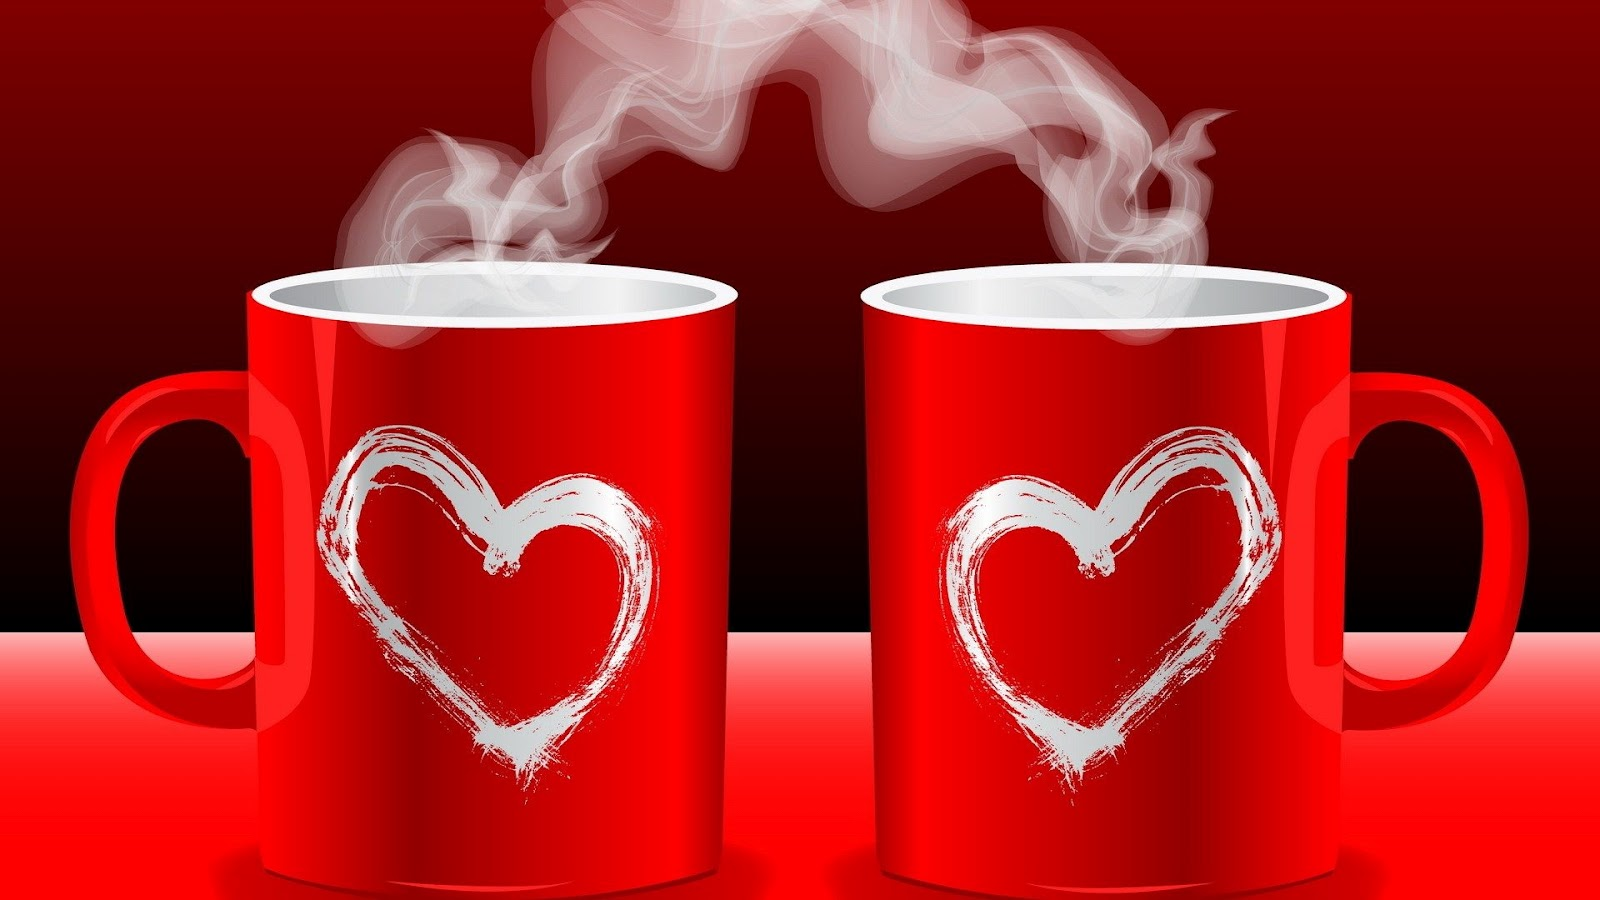 Wallpaper Good Morning I Love You : good morning greeting cards hd wallpapers free download 2013 ~ Full Hd Wall Pictures